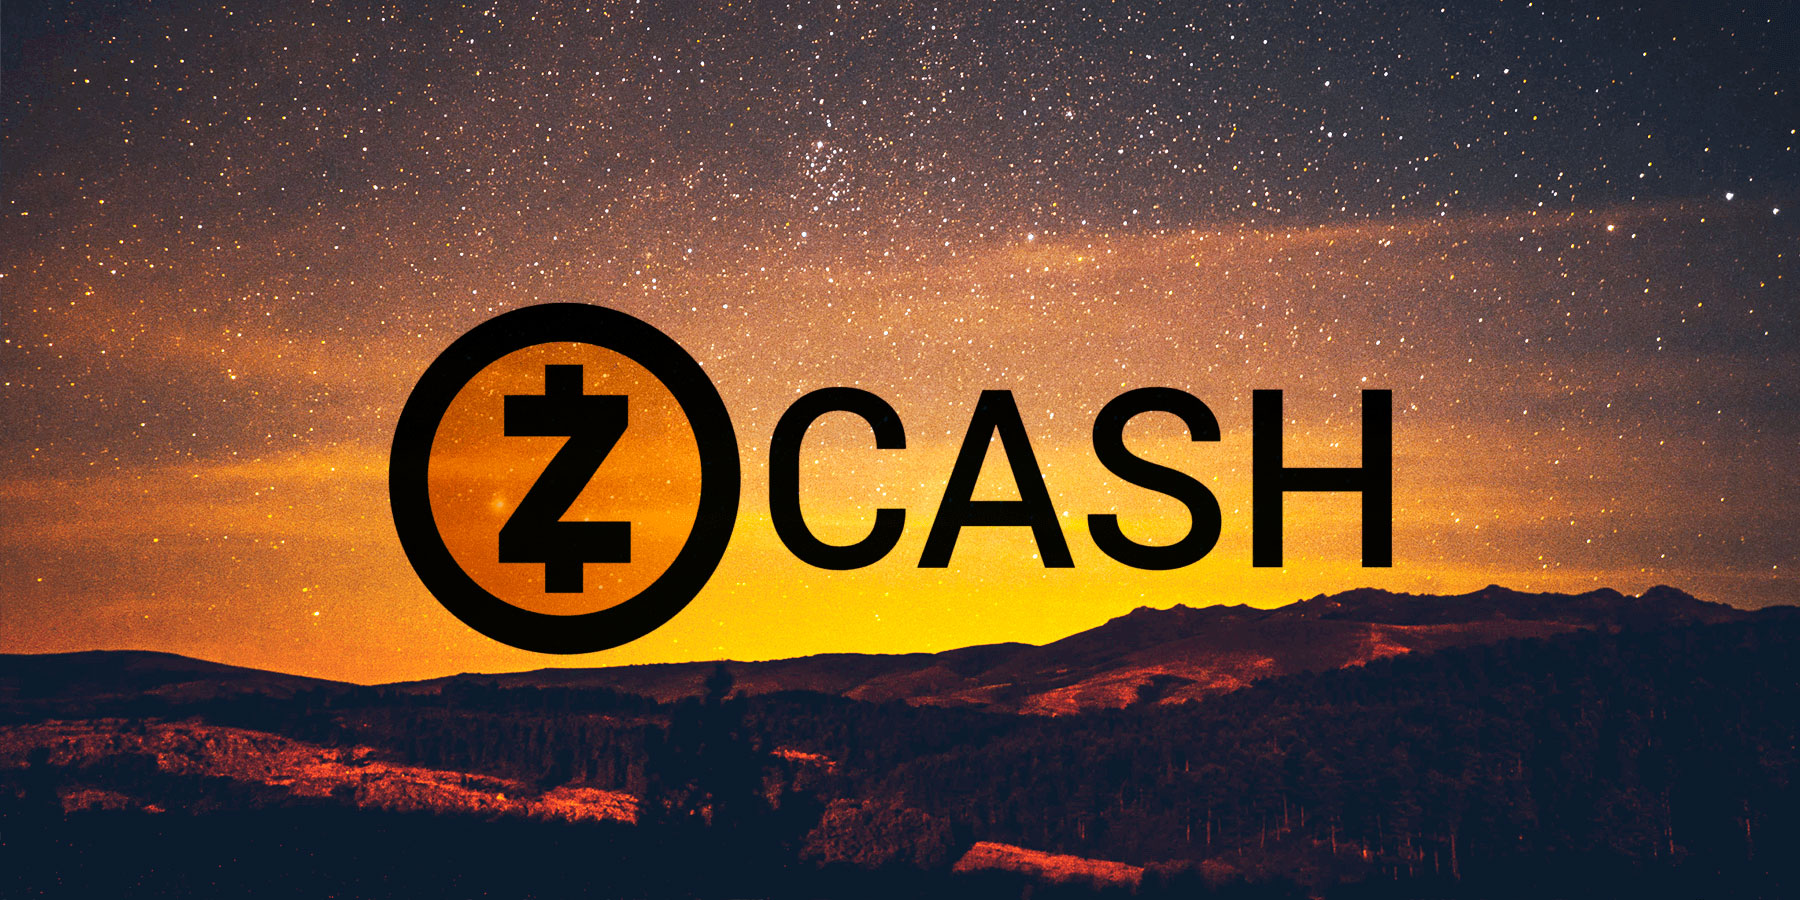 ZCASH Mining 400% More Mrofitable than Bitcoin (BTC)